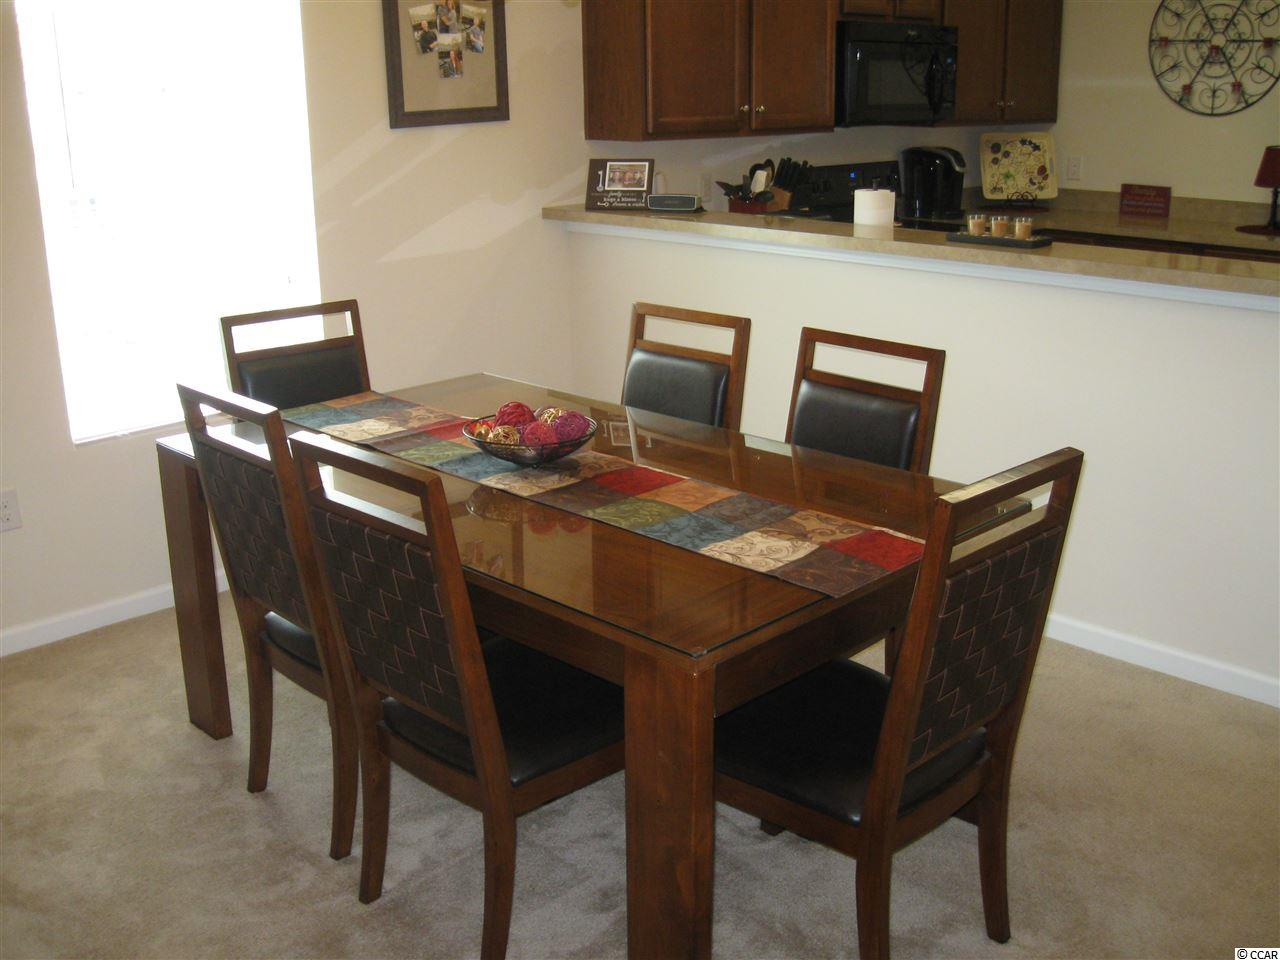 3 bedroom  Willow Bend condo for sale